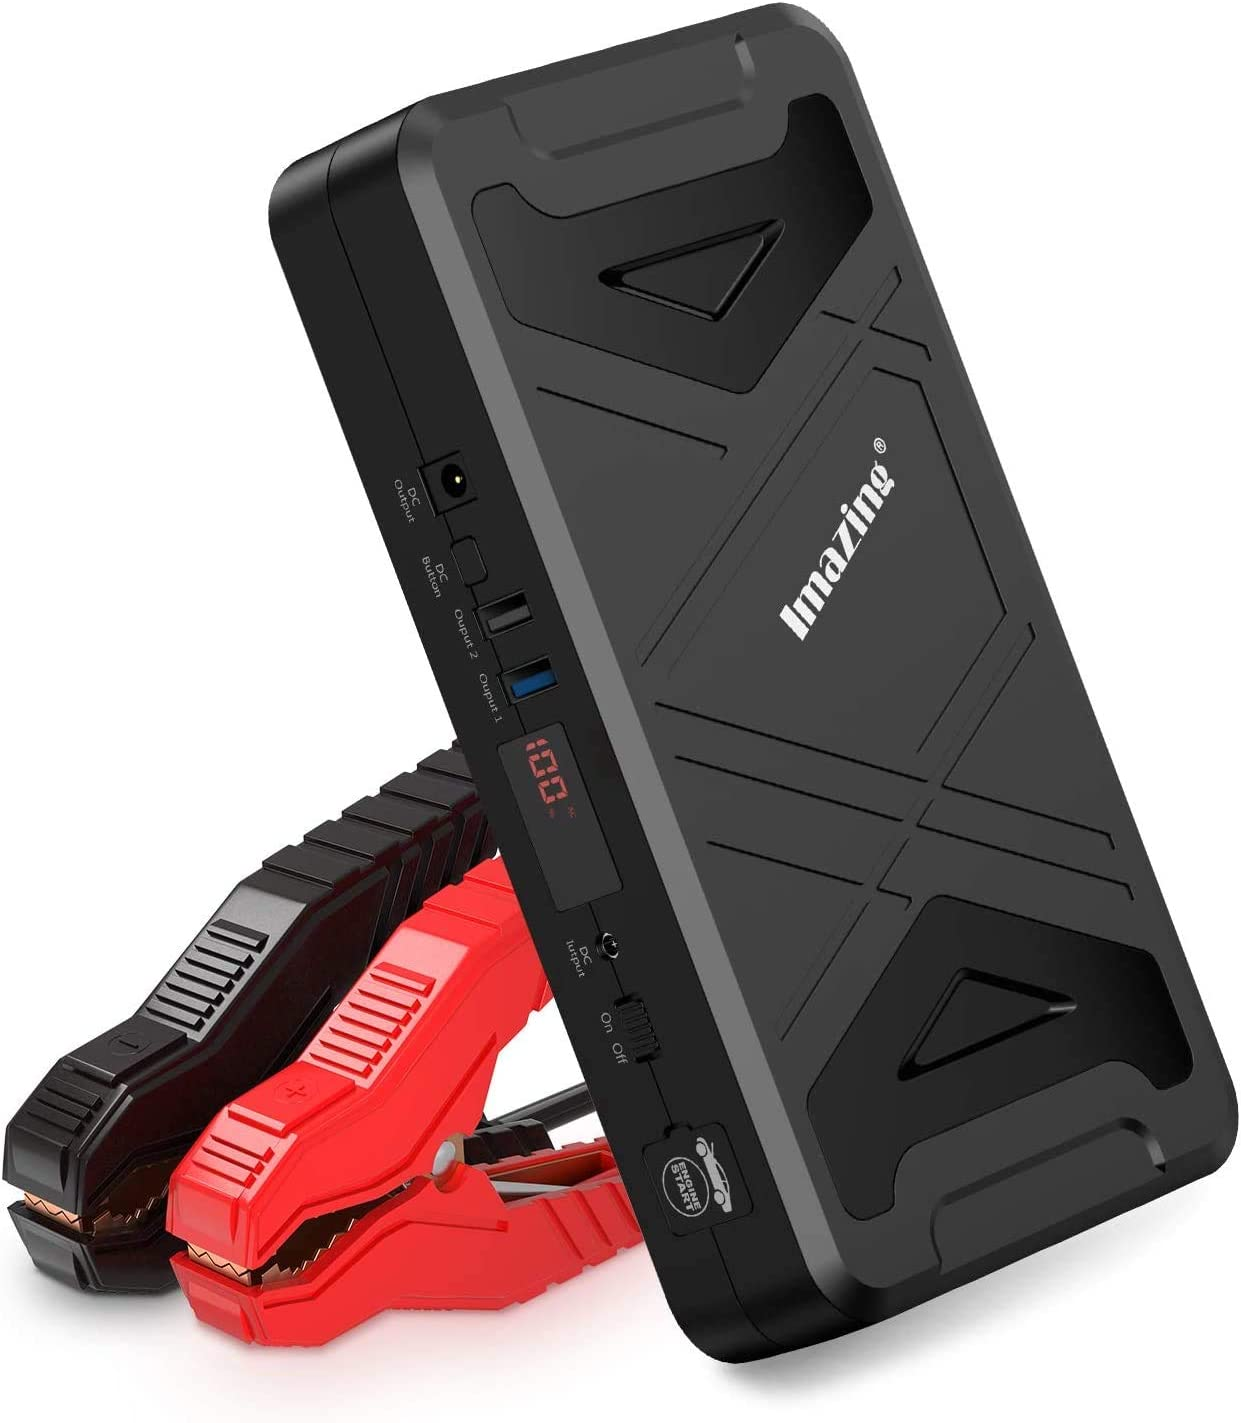 Imazing Portable Car Jump Starter - 2500A Peak 21000mAh (Up to 10L Gas or 10L Diesel Engine) 12V Lithium Auto Battery Booster Power Pack with Jumper Cables, 110V Inverter and QC 3.0